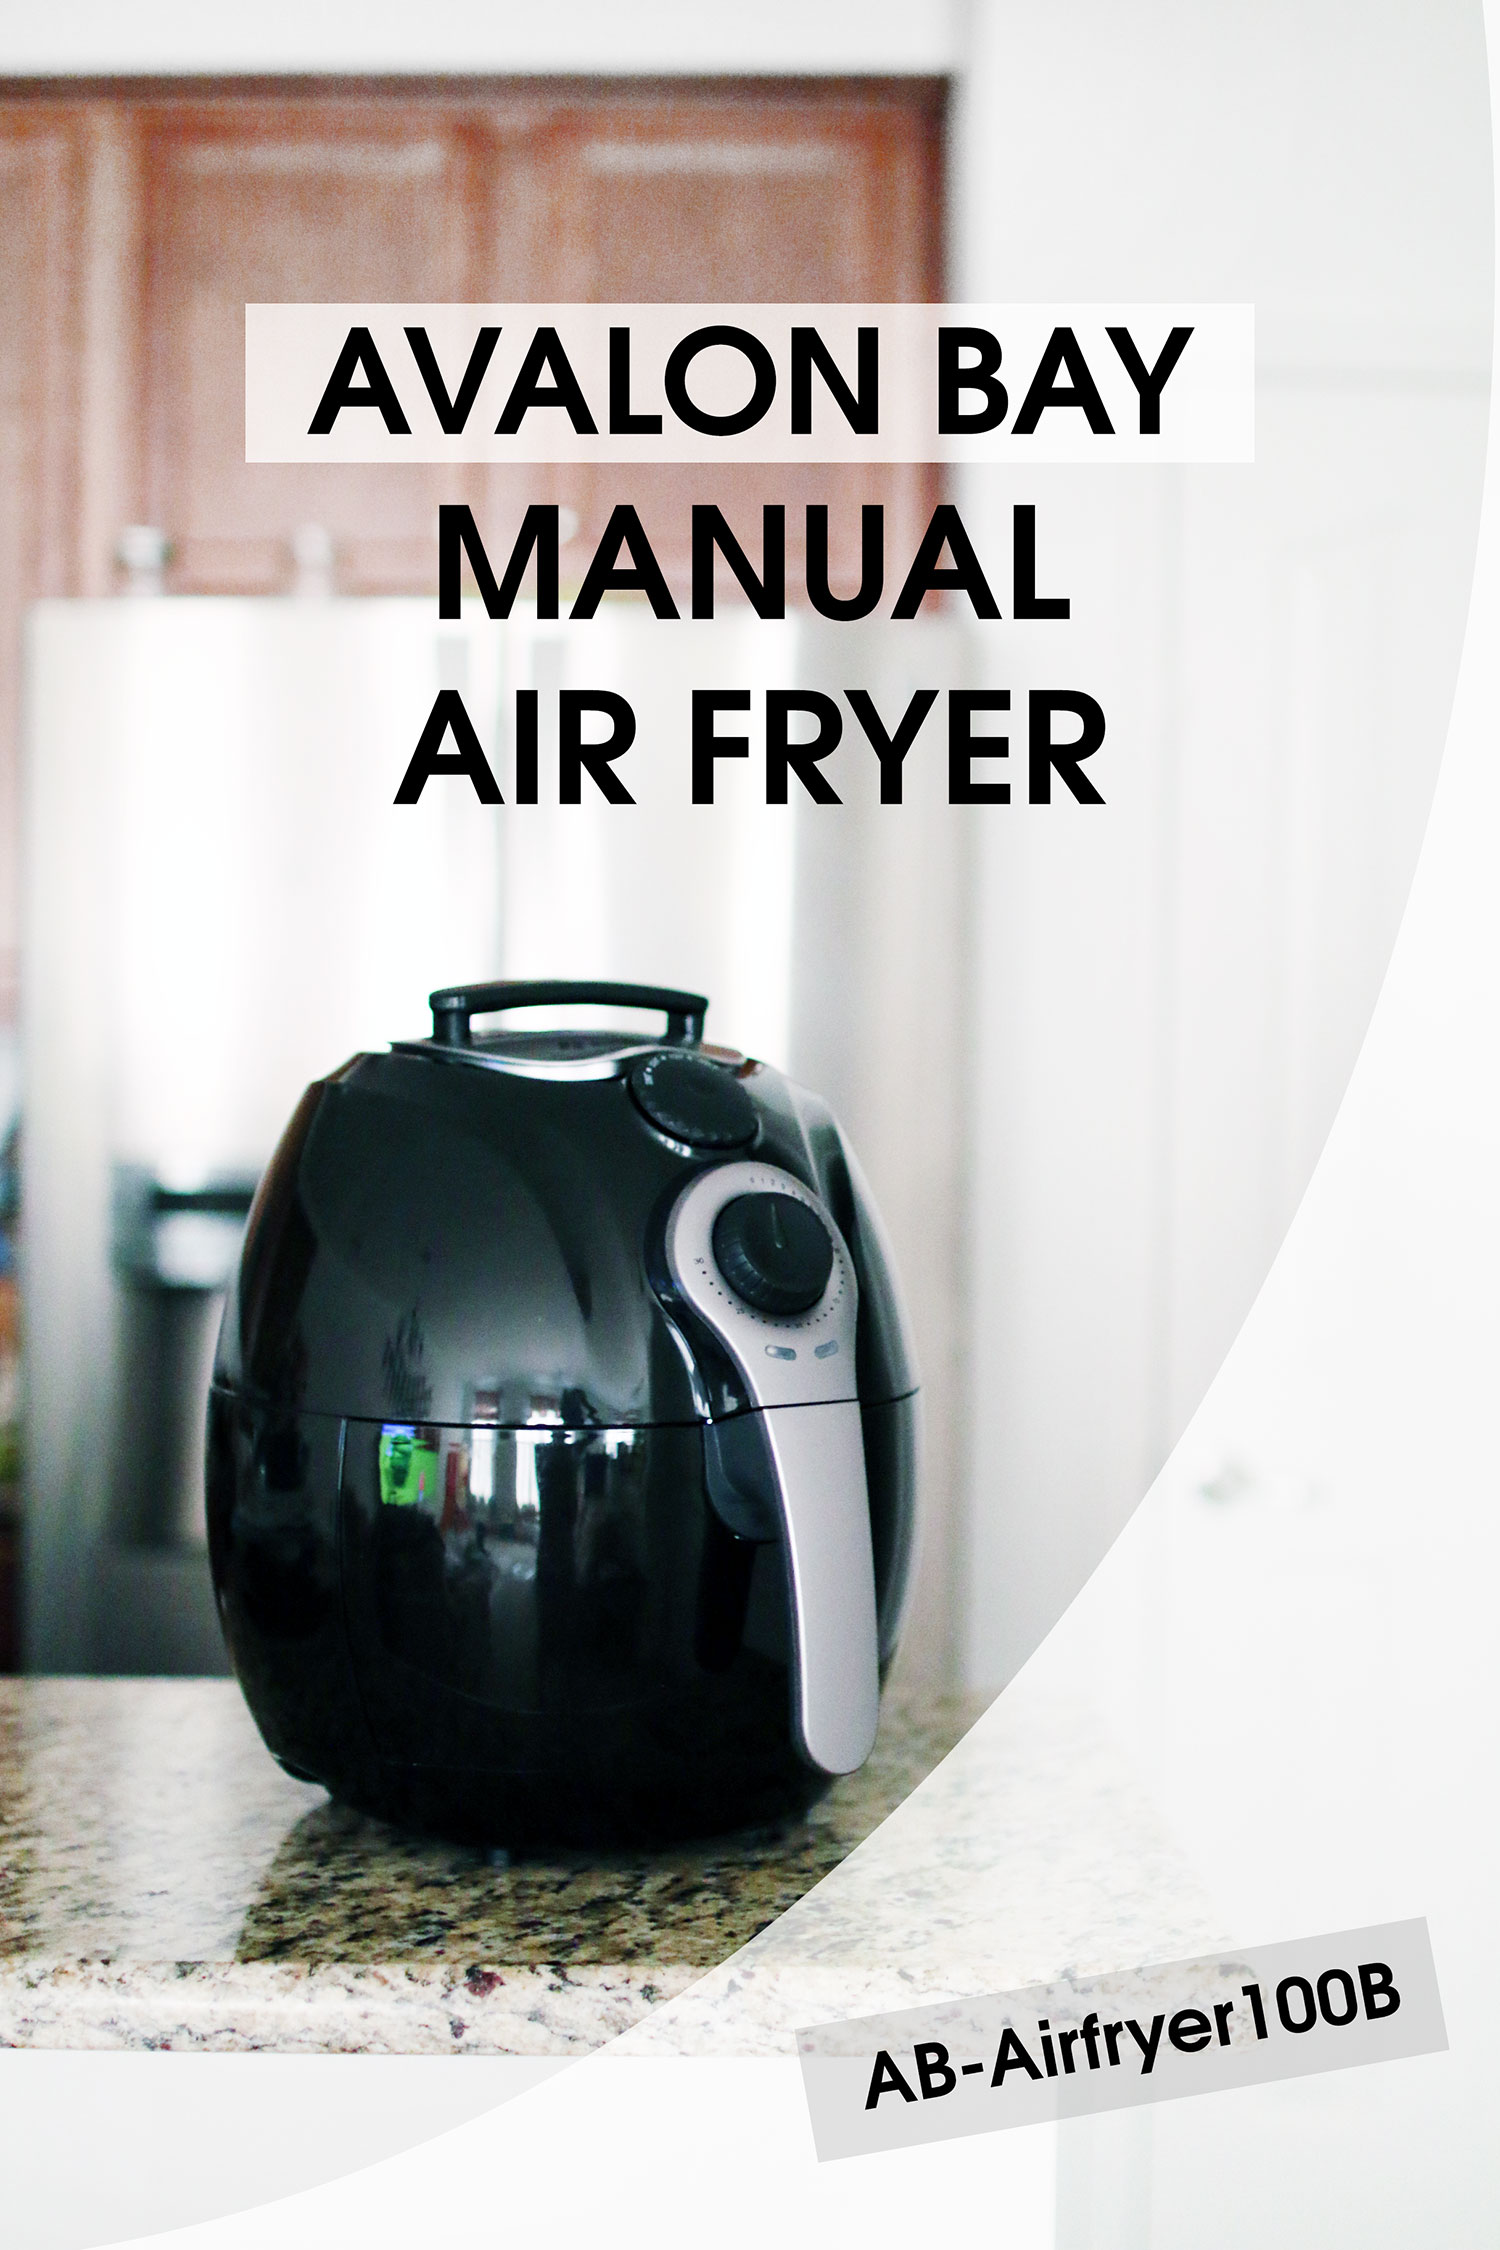 Avalon Bay Manual Air Fryer